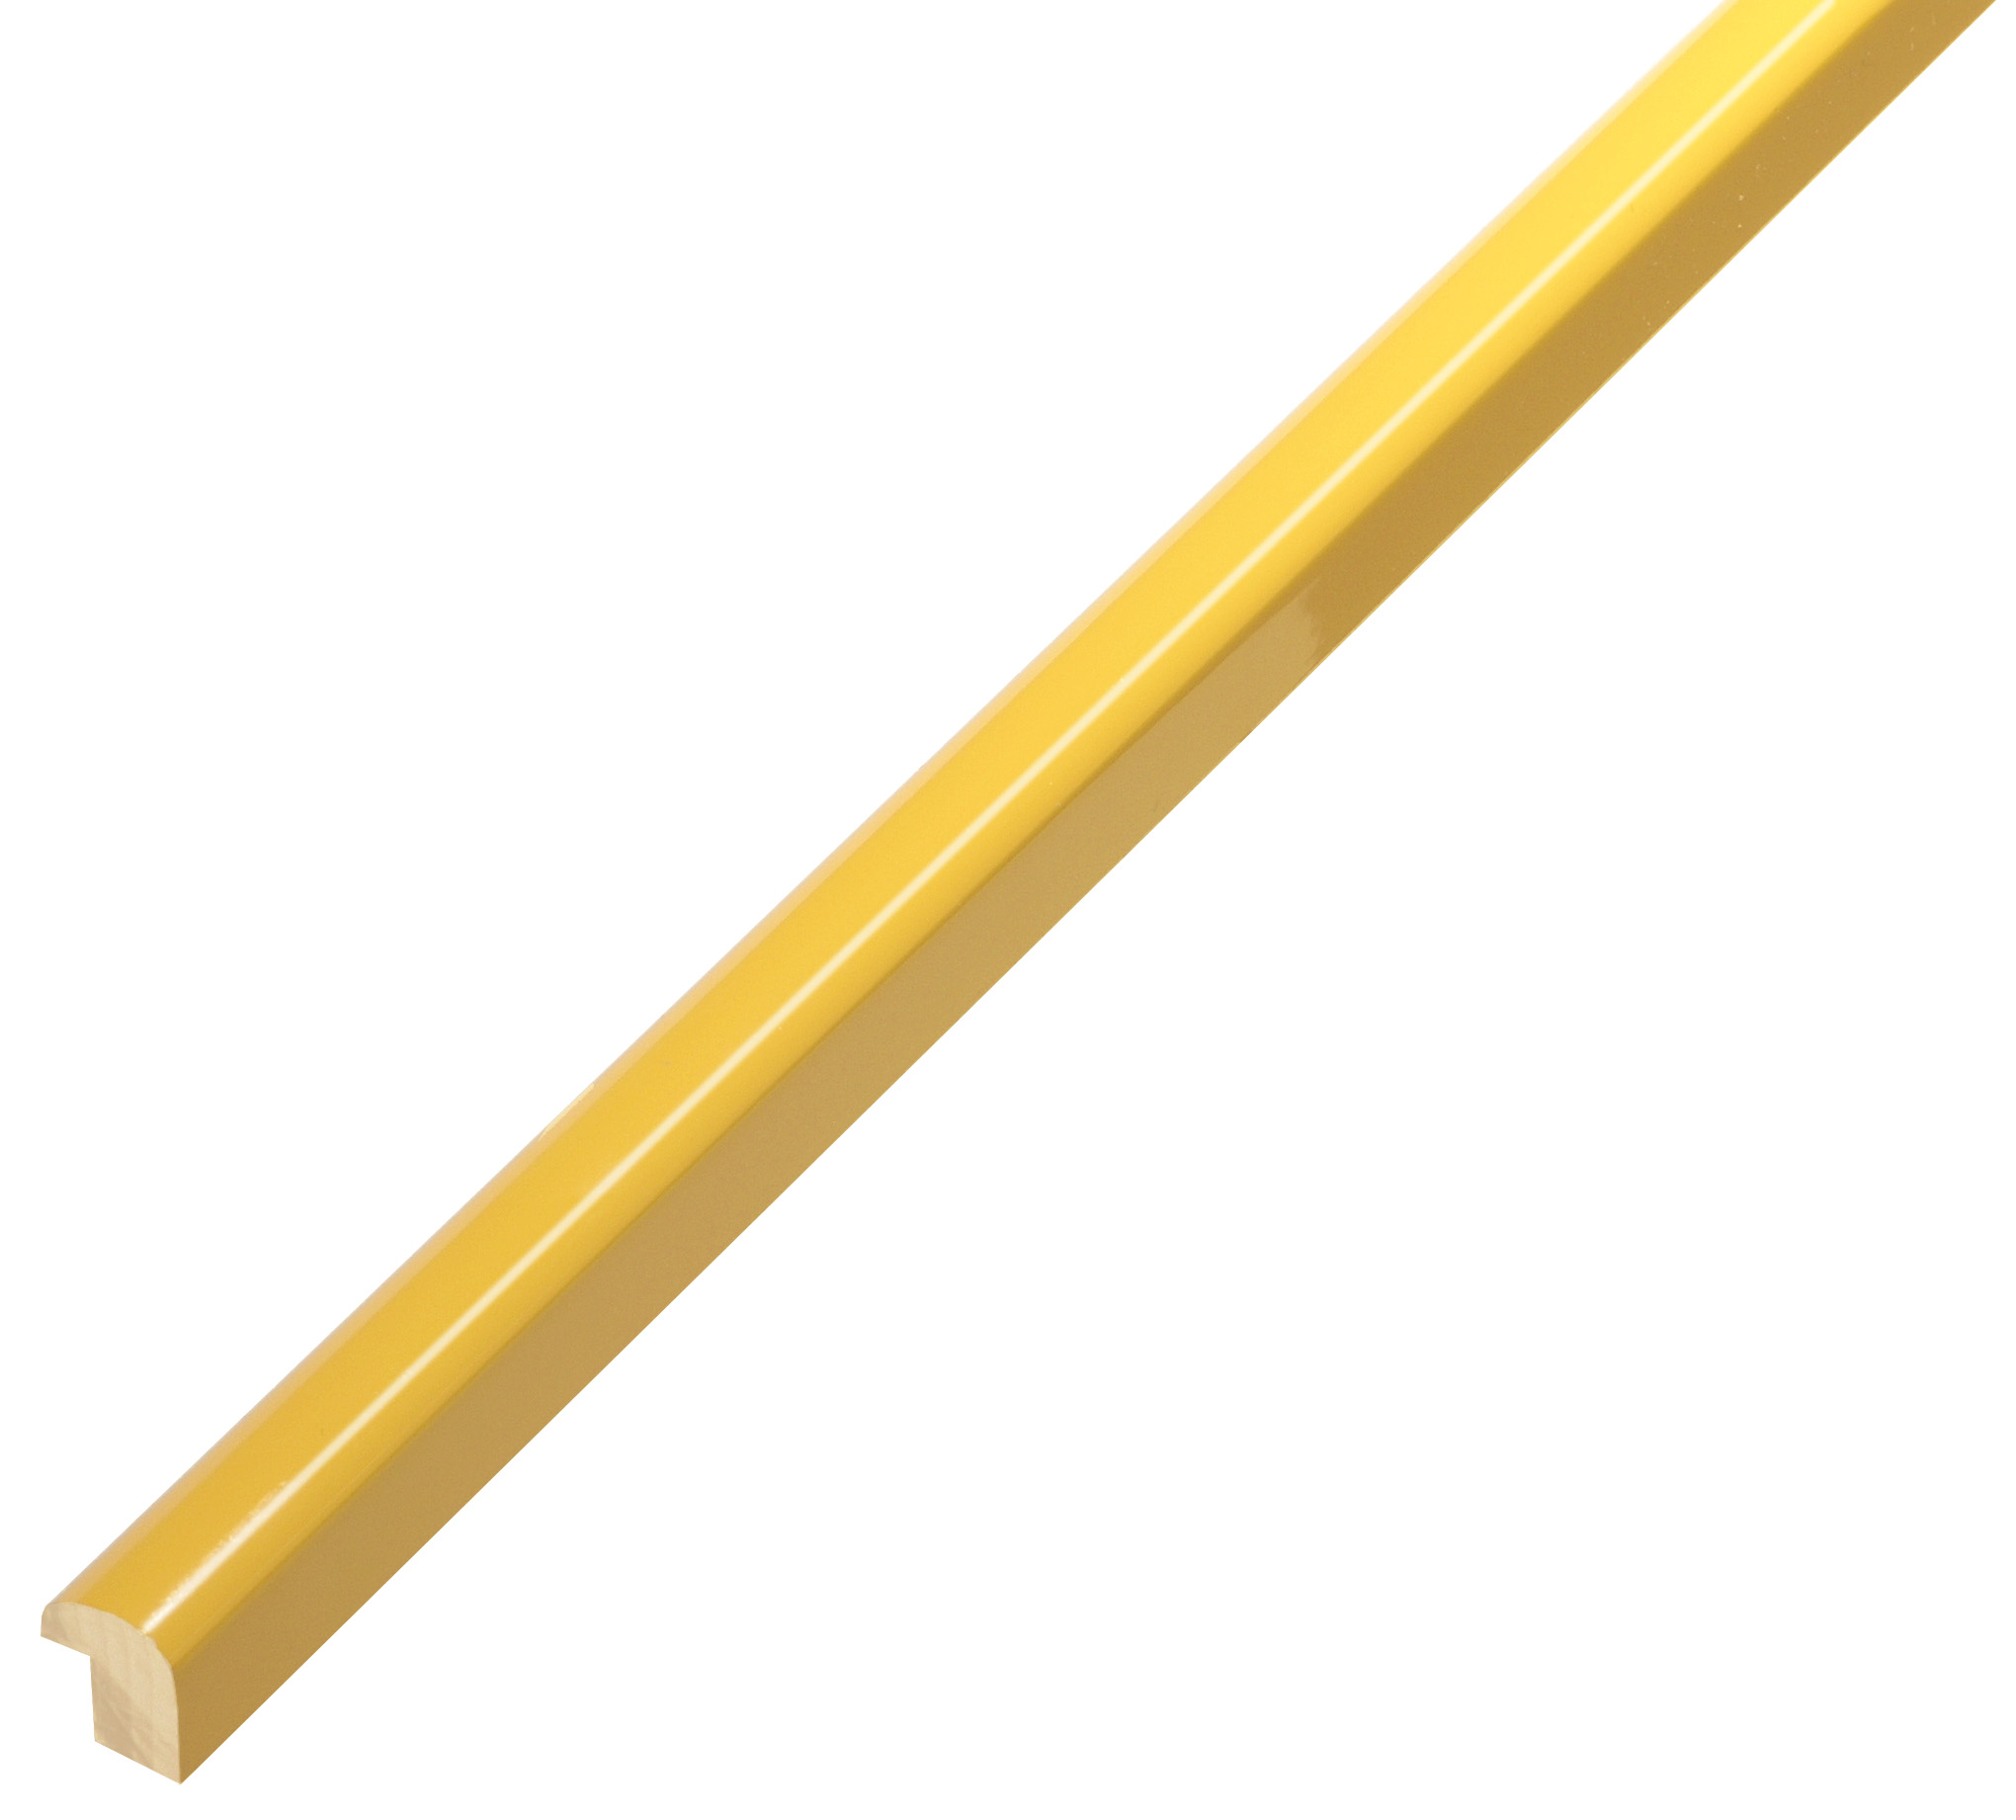 Moulding ramin - width 11mm height 13 - glossy jellow